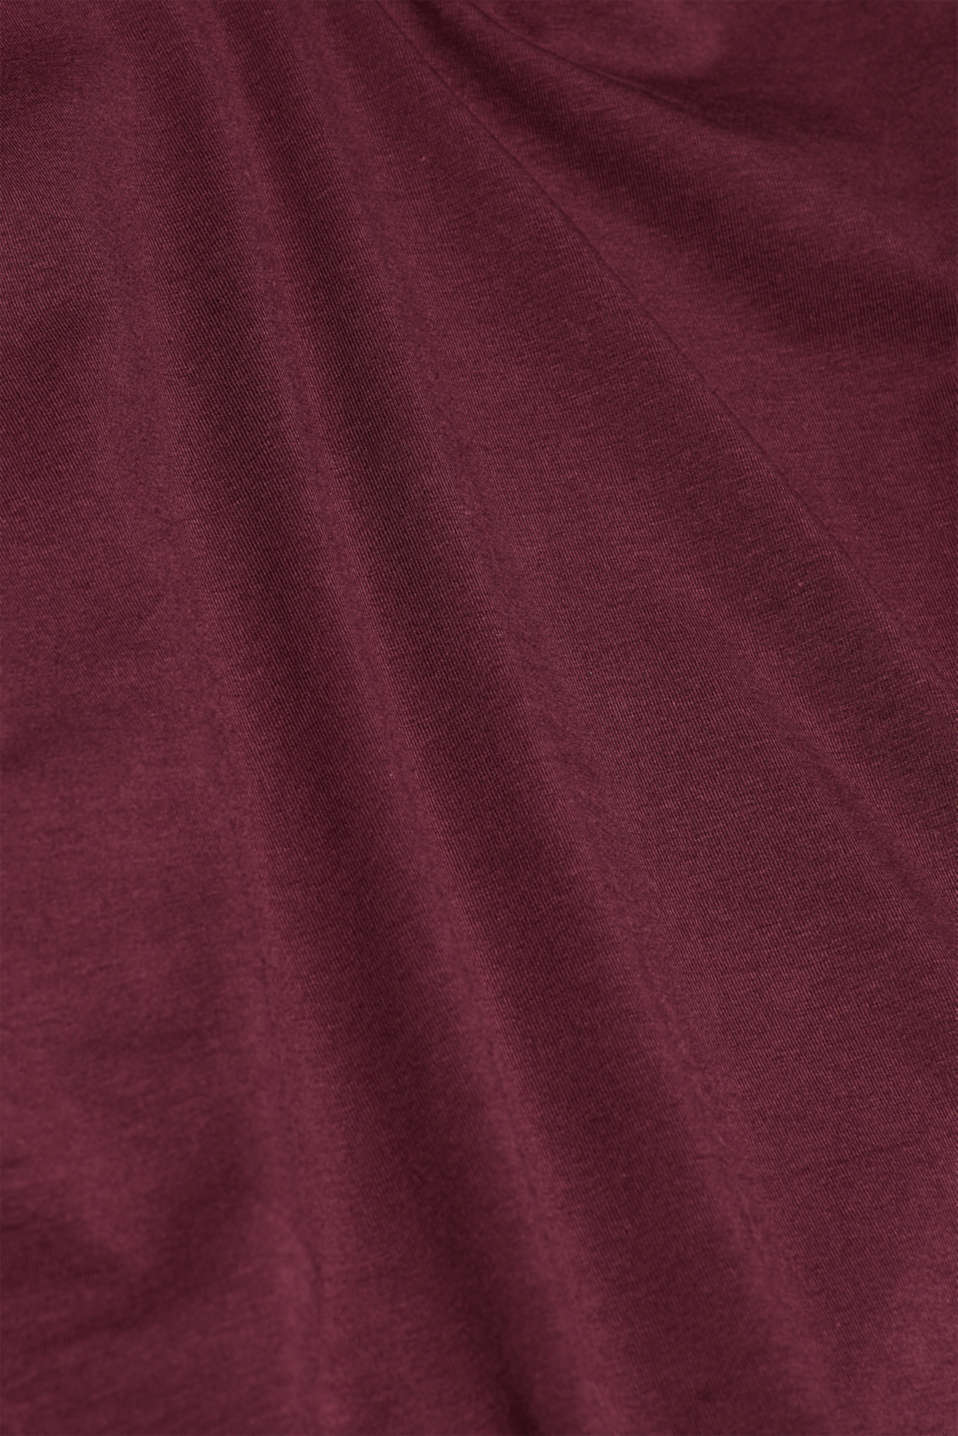 Long sleeve stretch cotton top, BORDEAUX RED 4, detail image number 4